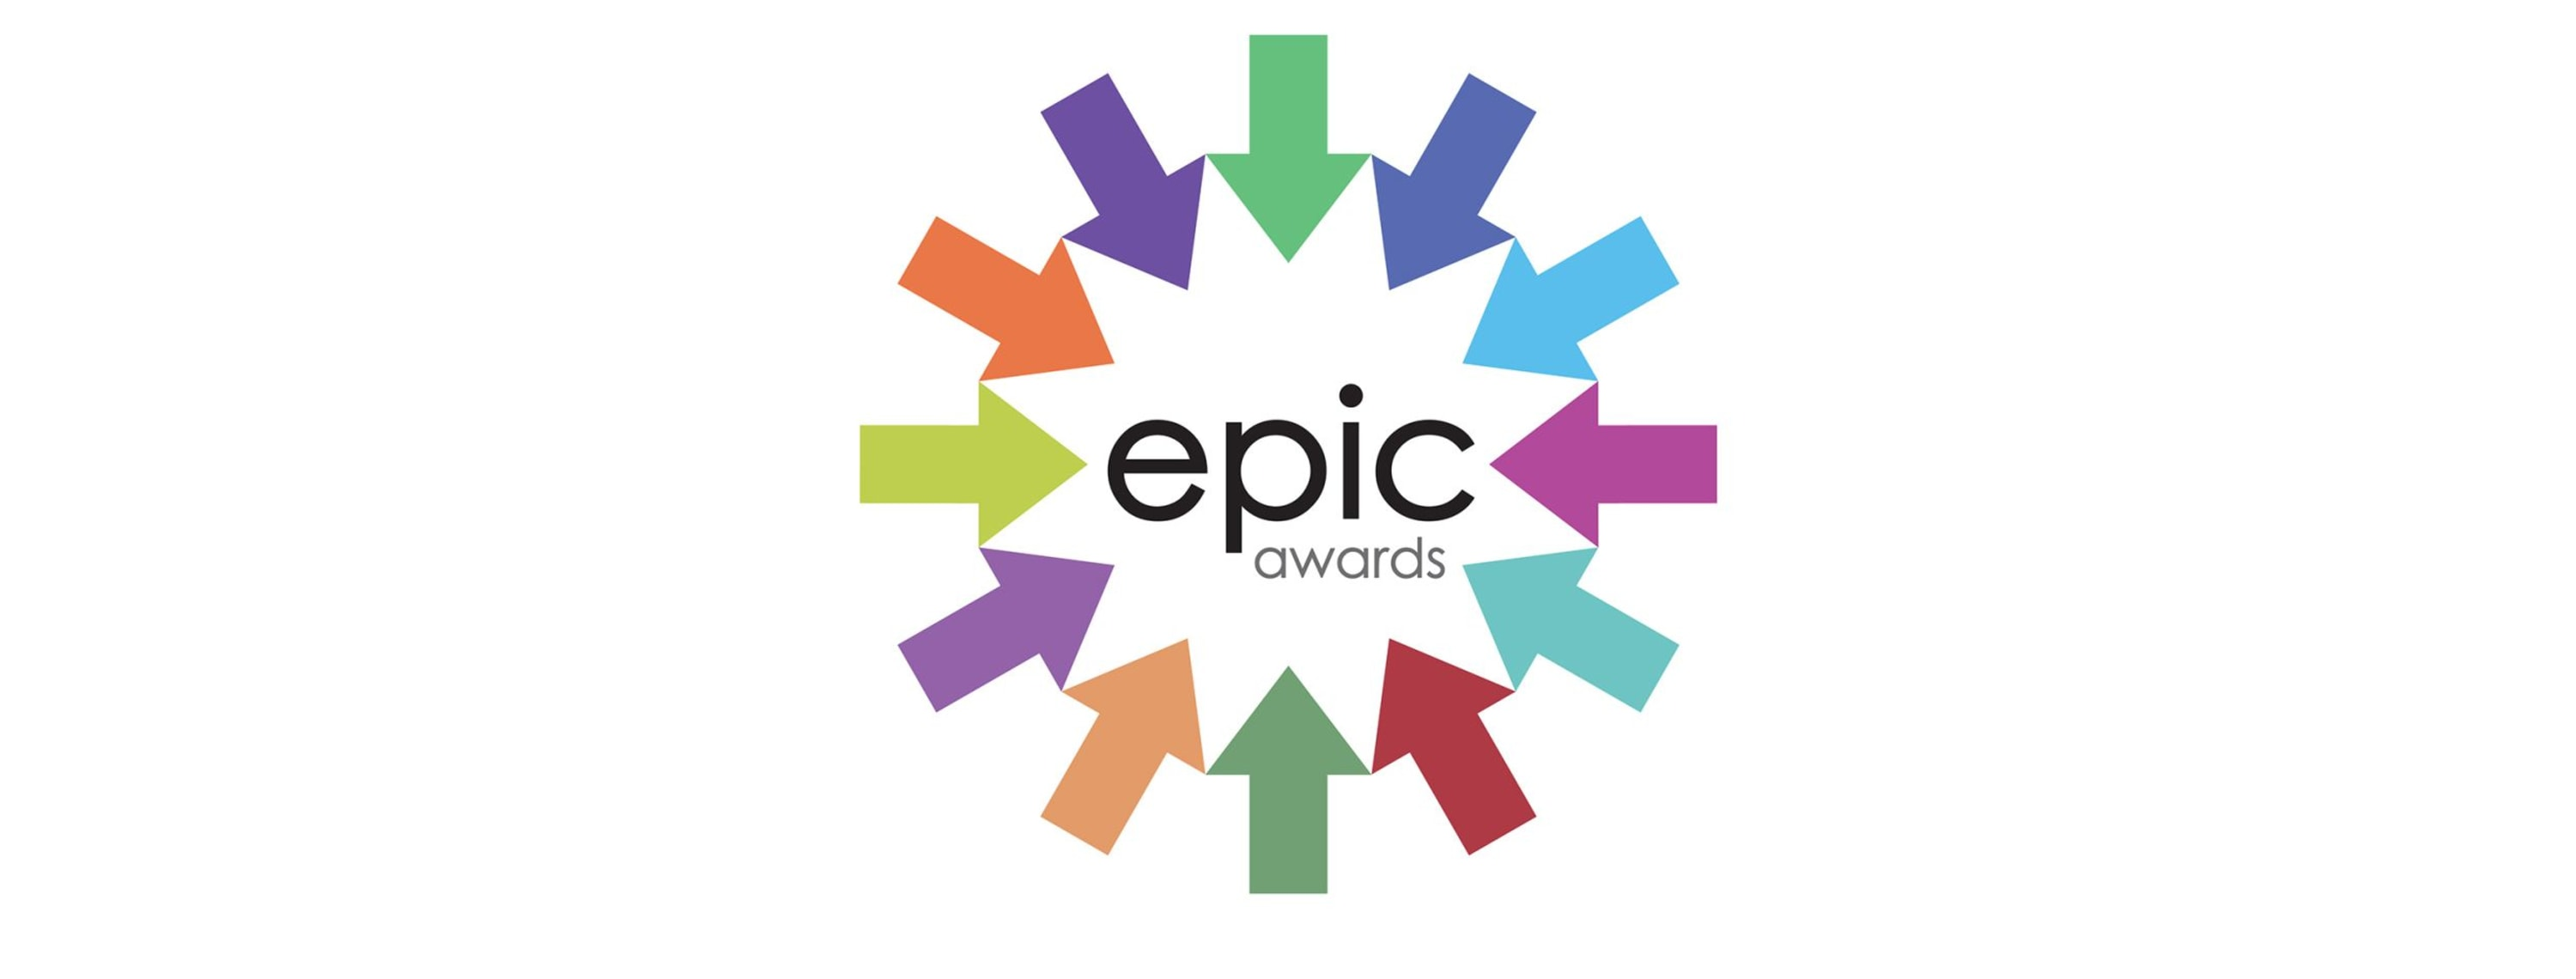 Epic Awards 2017 shortlist announced